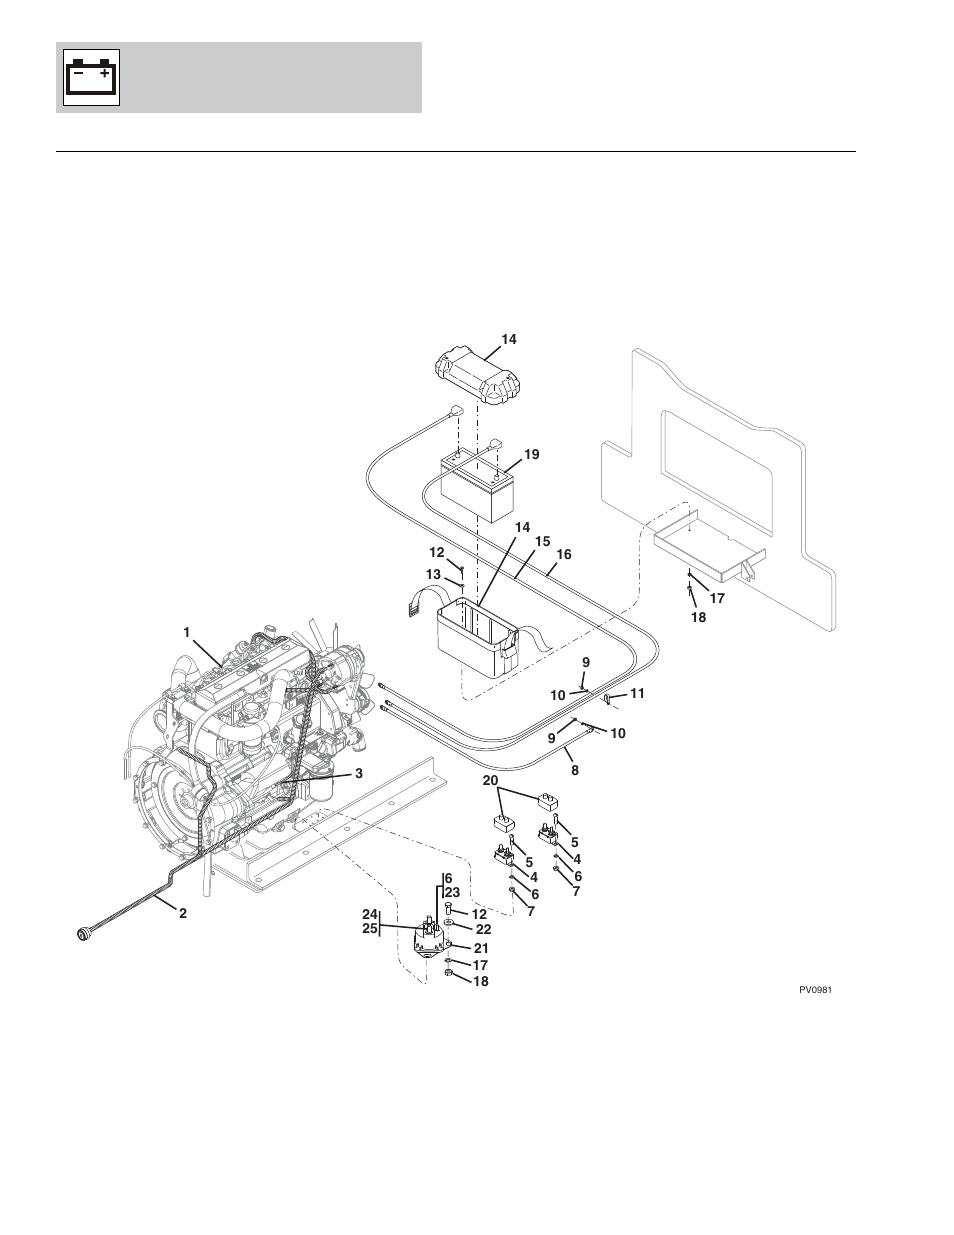 Figure 10-3 engine electrical group, Engine electrical